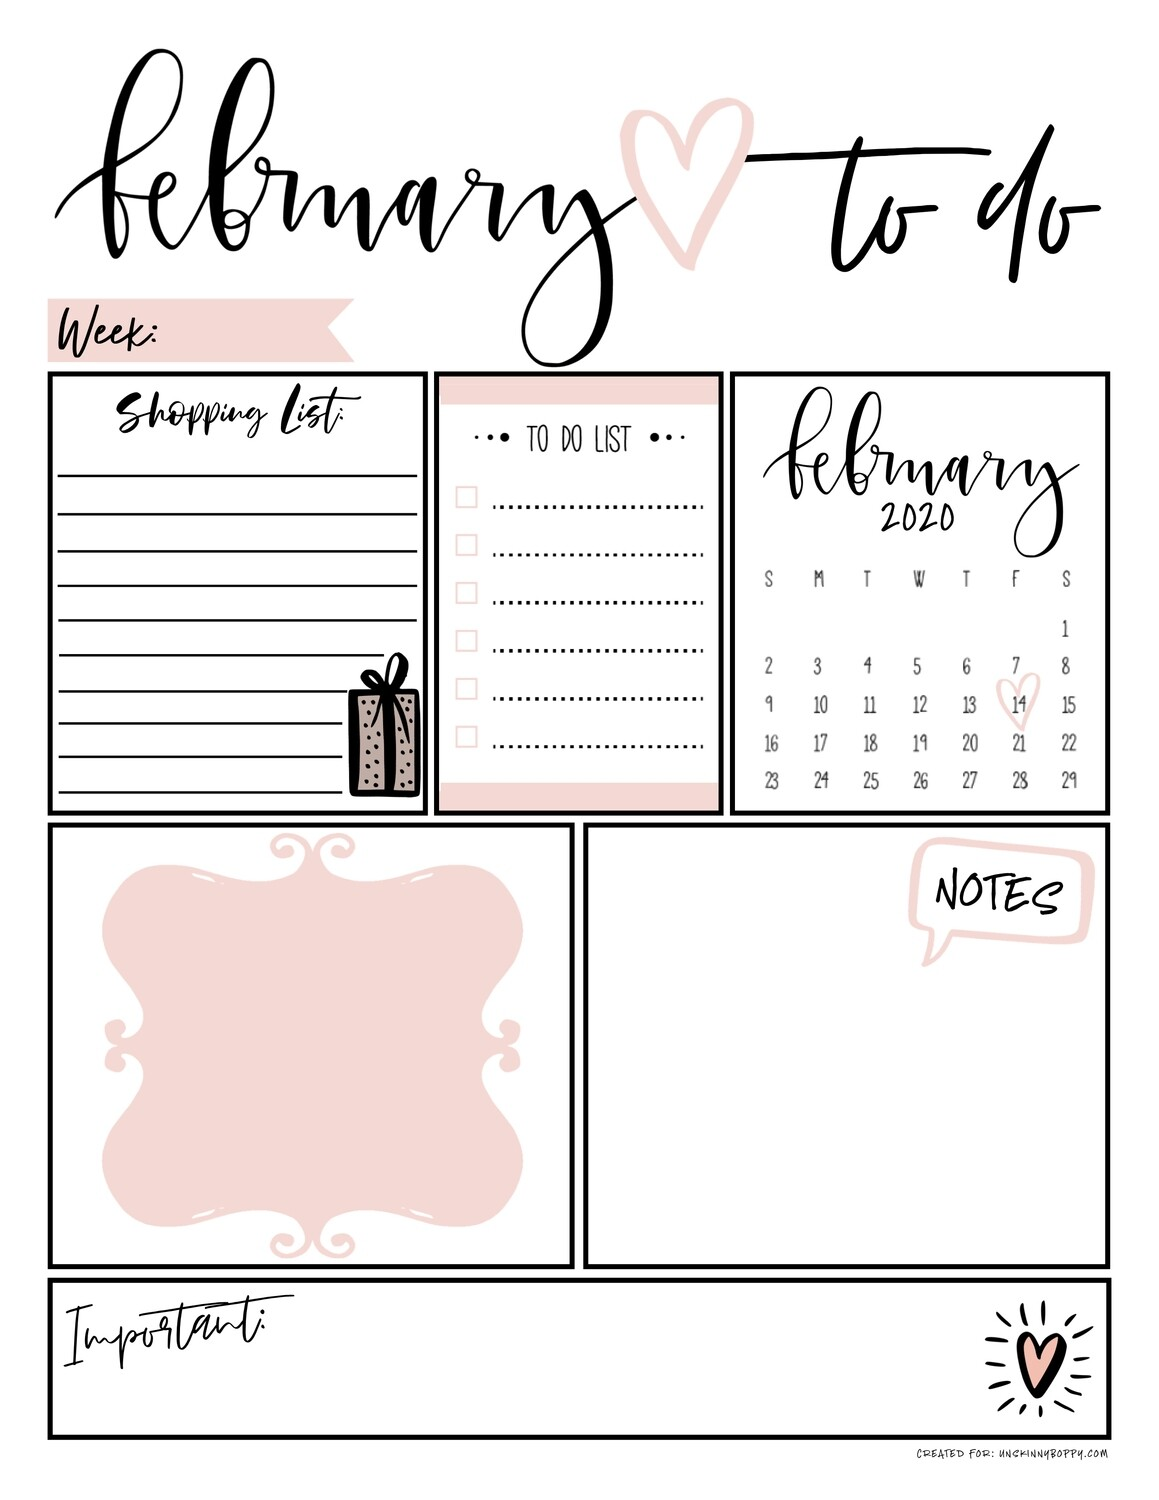 February Daily Organizer/ To Do List Free Printable